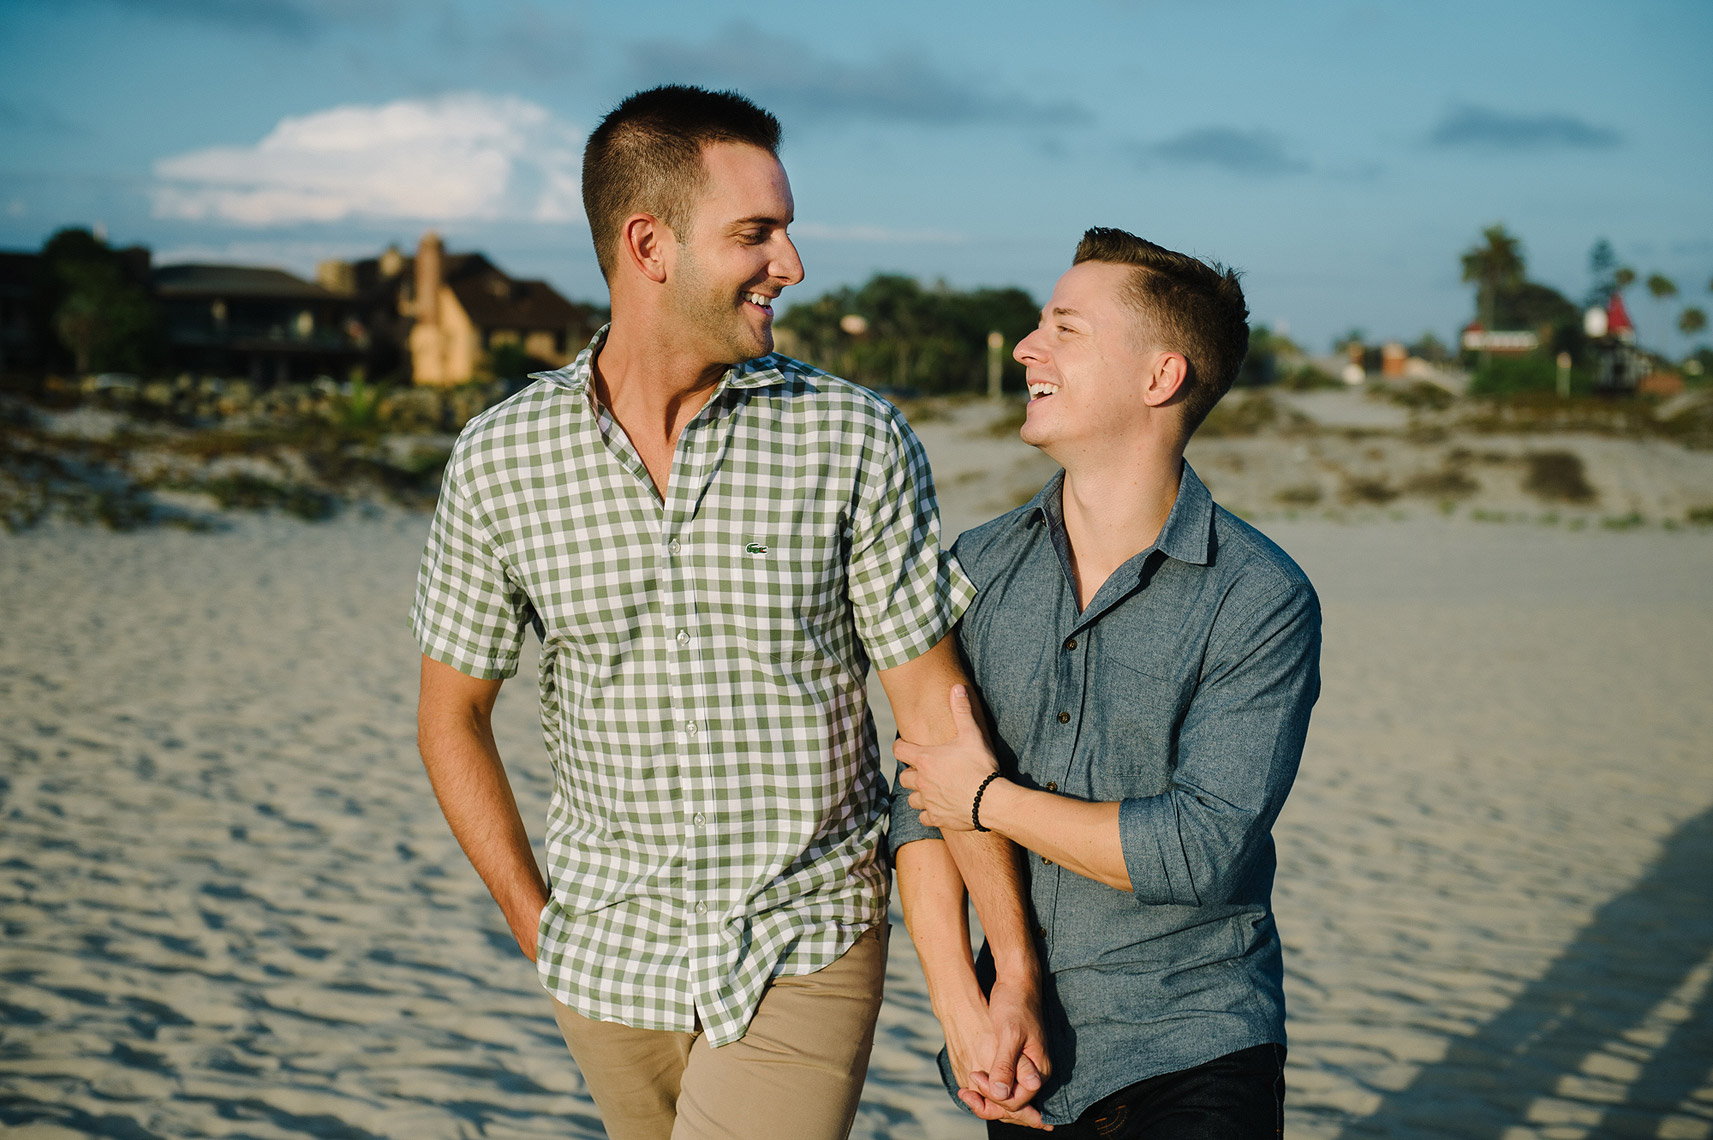 10-coronado-same-sex-engagement-photo.jpg